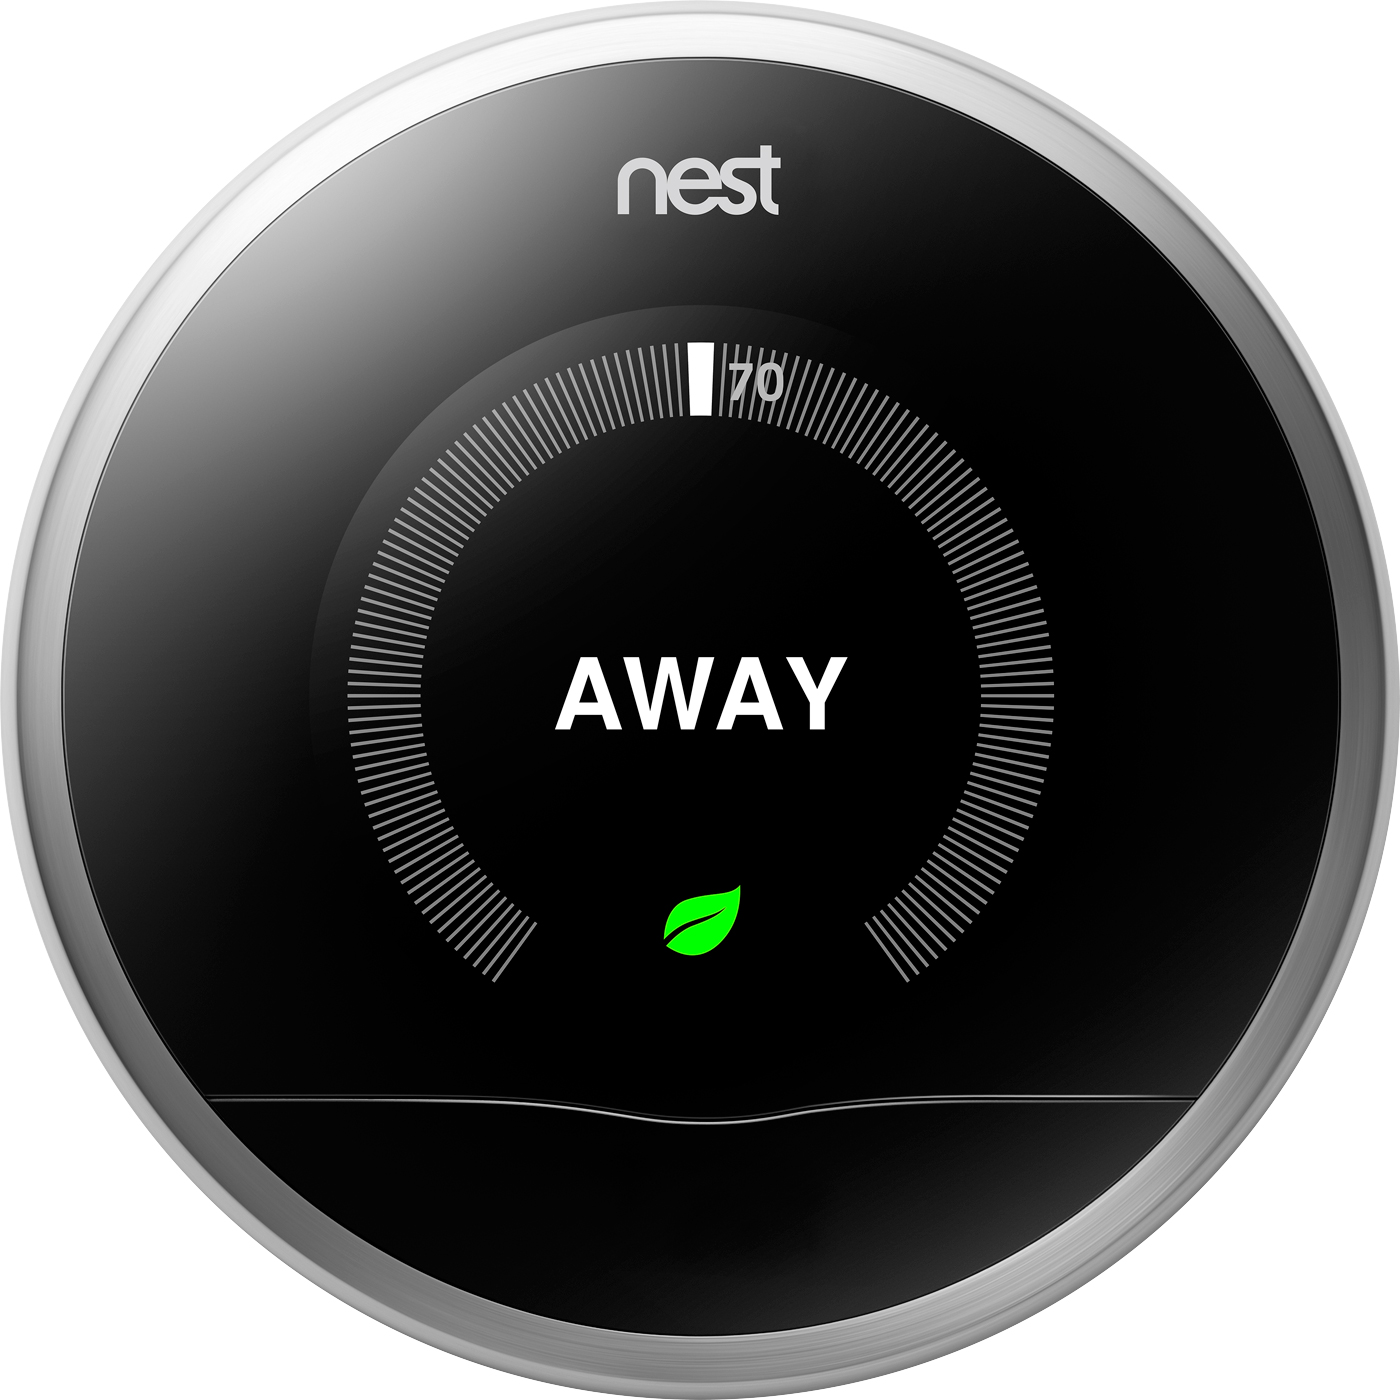 Nest Thermostat Away